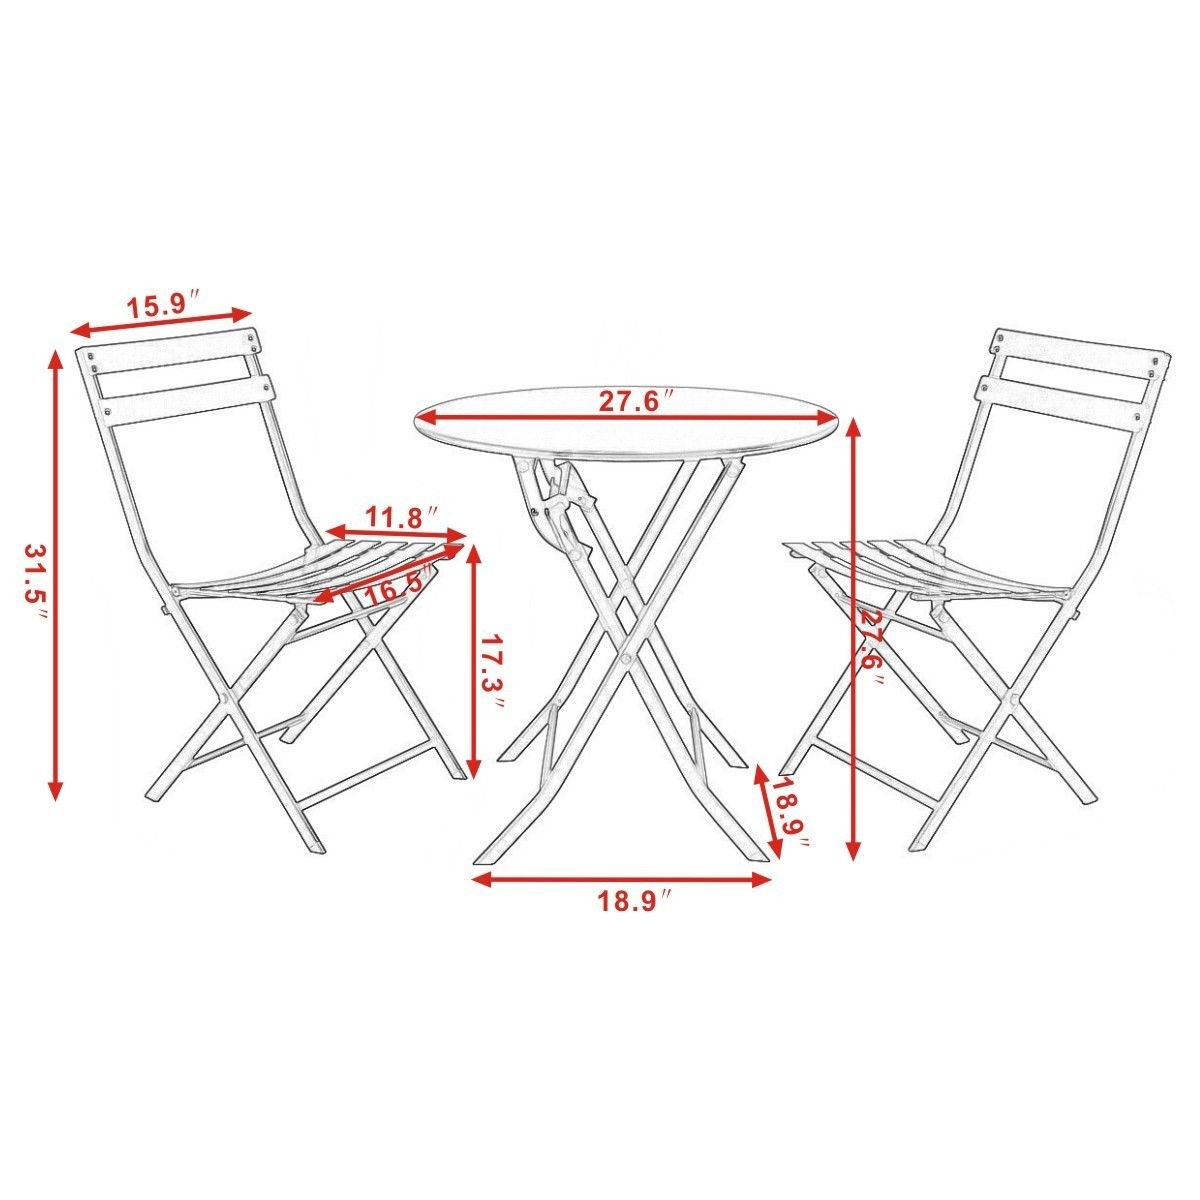 3 Pcs. Blue Table Chair Set Foldable Outdoor Patio Garden Pool Metal Furniture by Allblessings (Image #3)